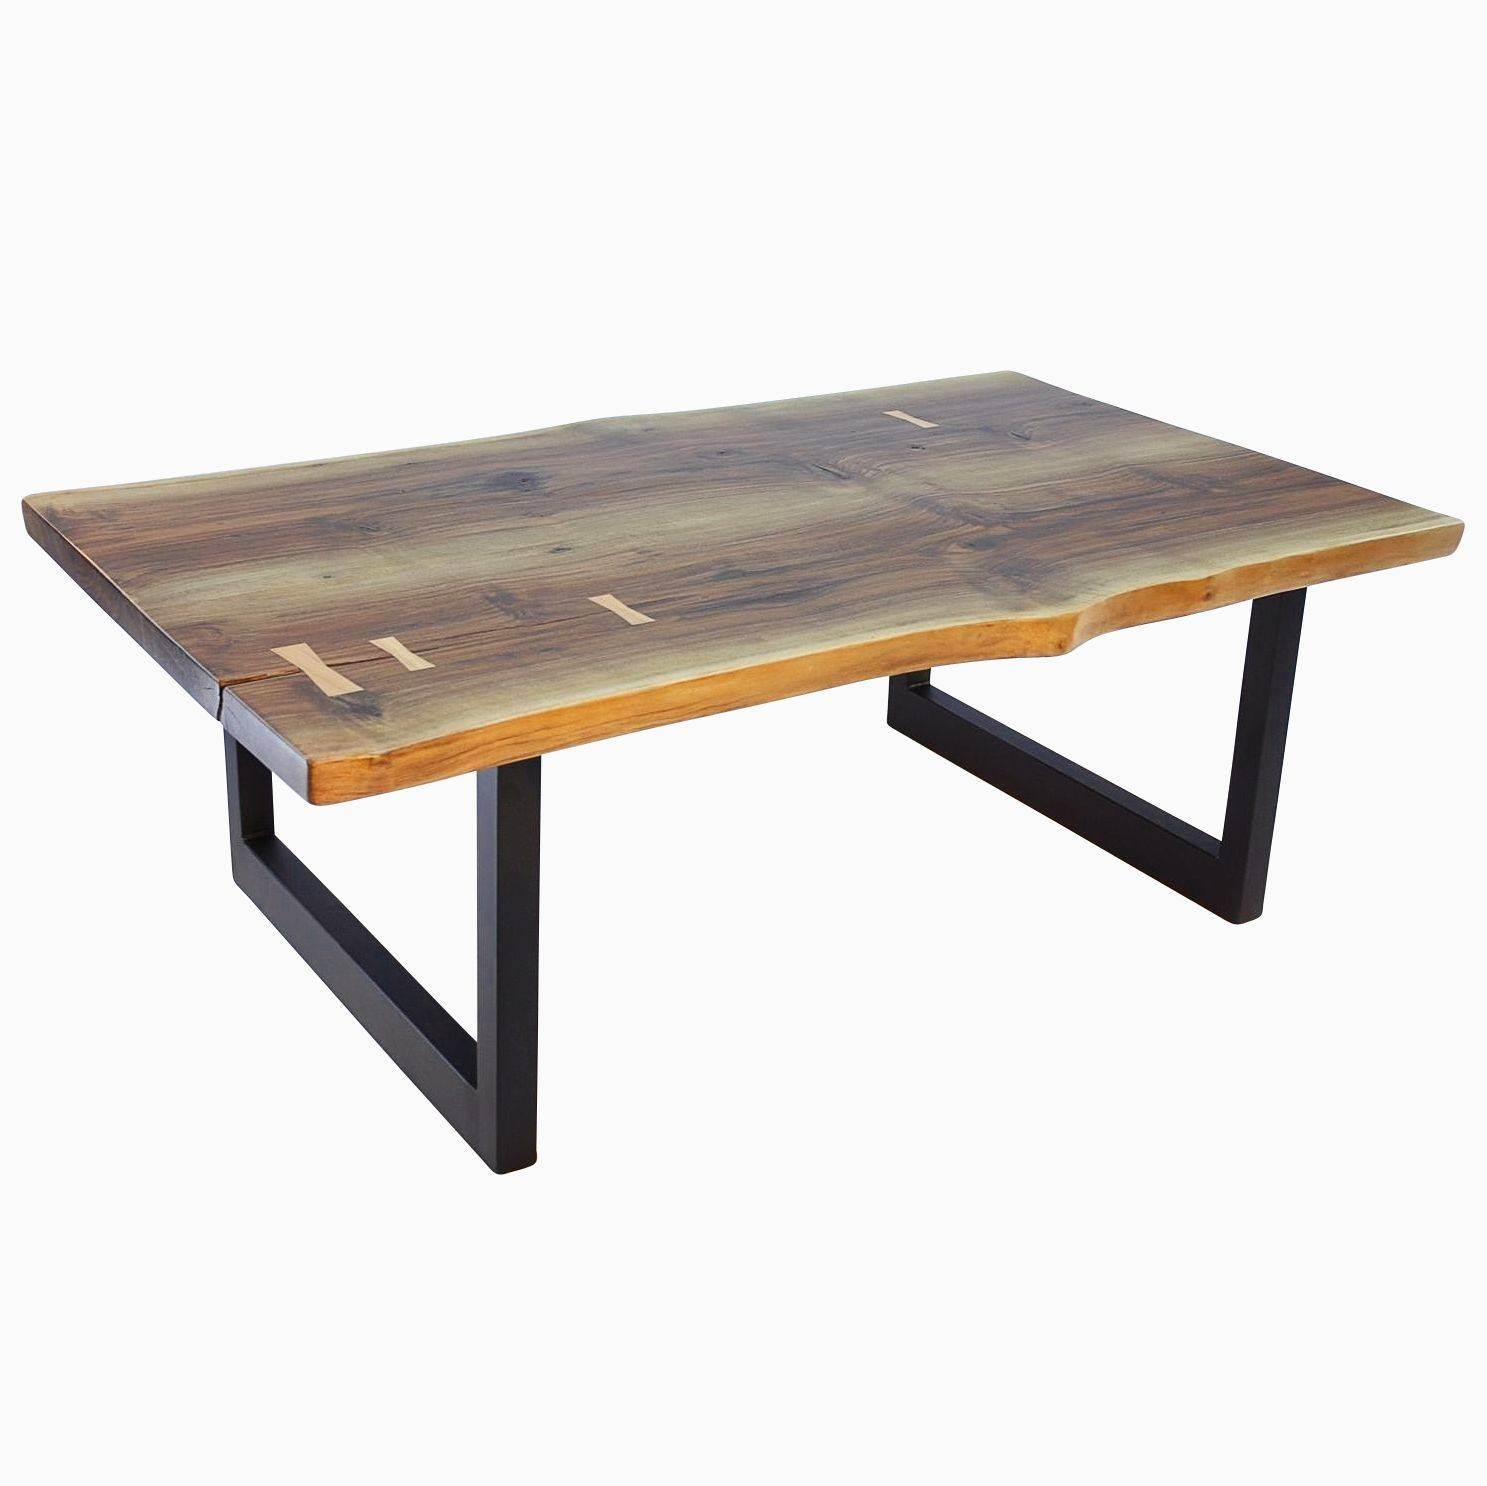 Walnut Coffee Tables | Custommade intended for Desk Coffee Tables (Image 30 of 30)